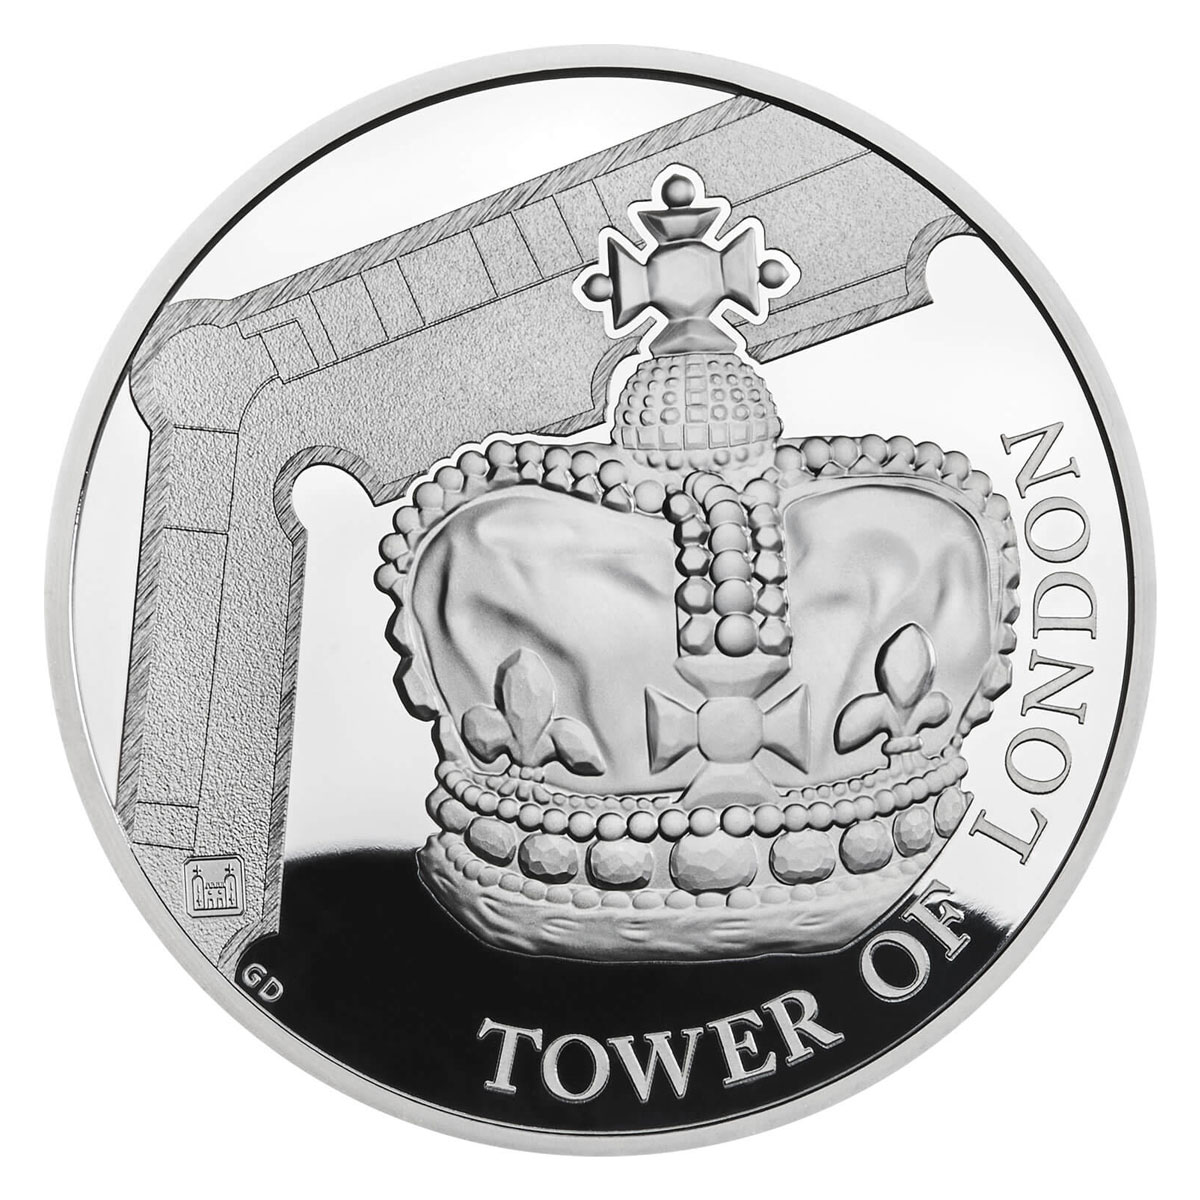 2019 Great Britain Tower of London - Crown Jewels Silver Proof £5 Coin GEM Proof